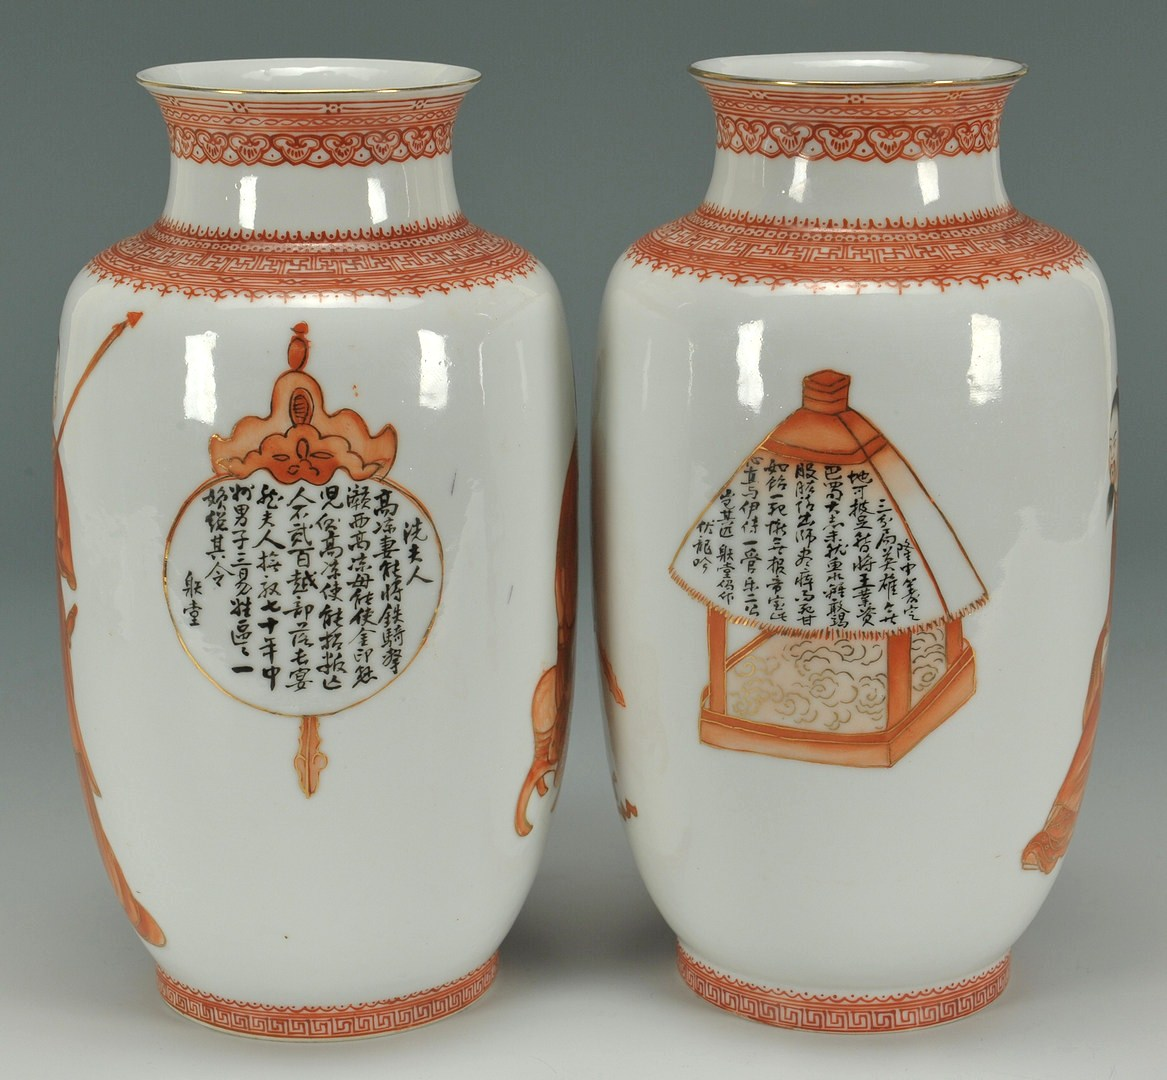 Lot 195: Pair of Chinese Republic Porcelain Vases